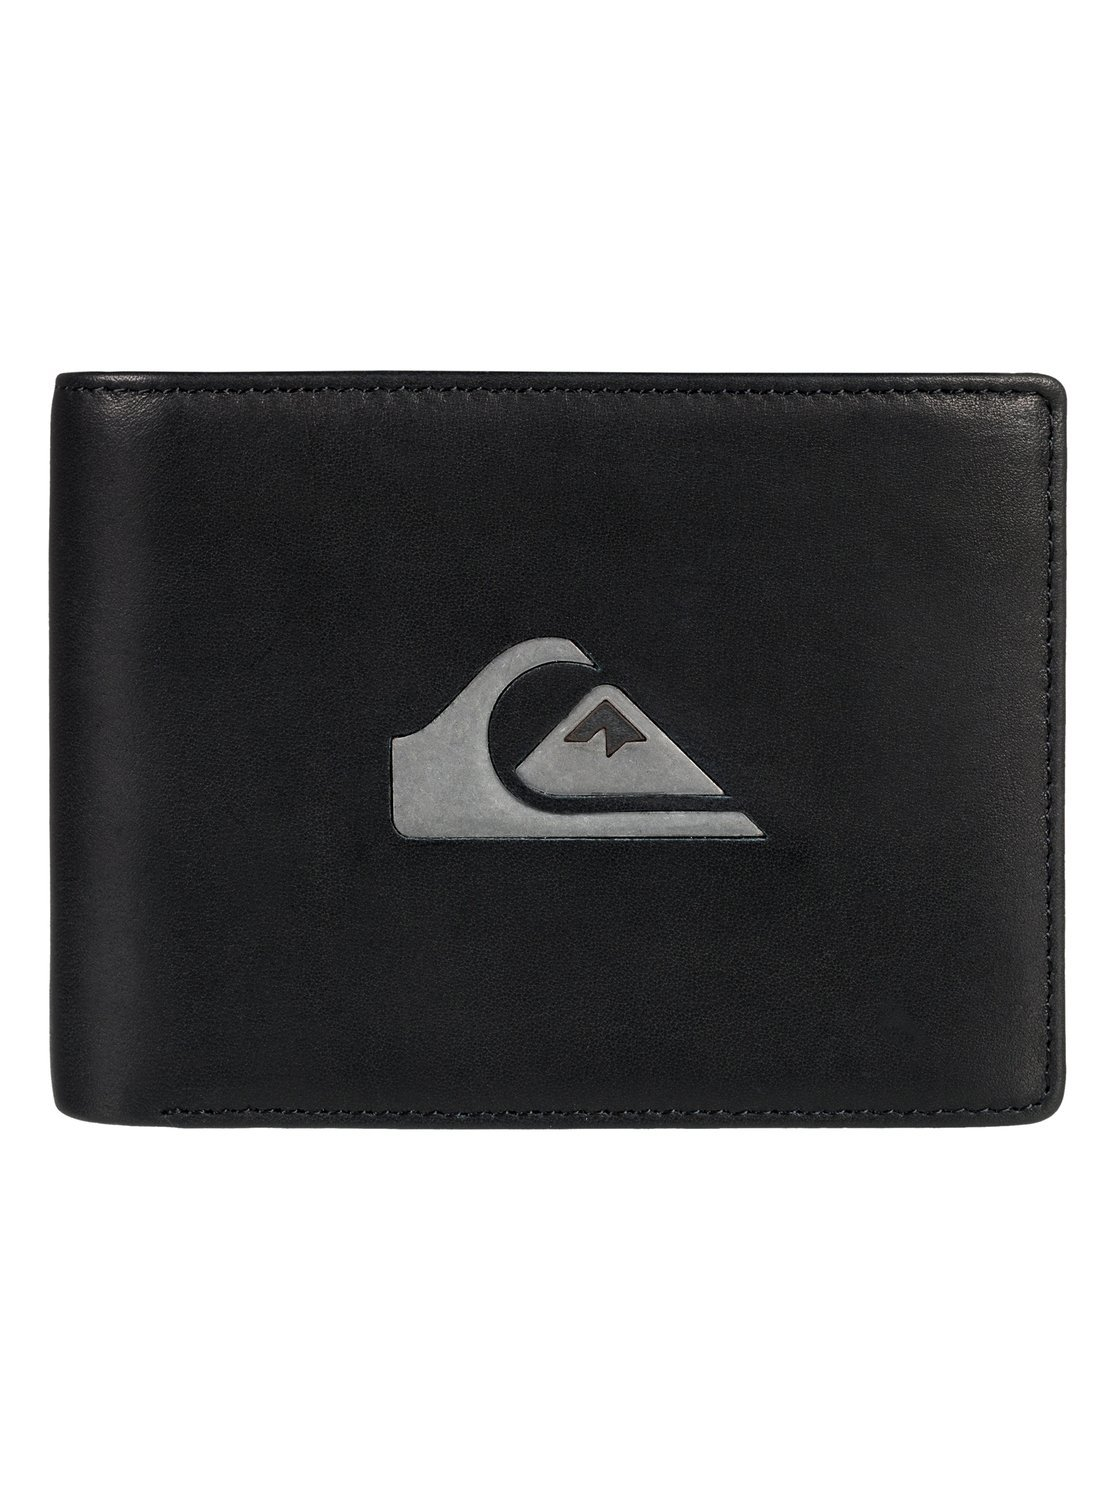 Quiksilver Miss Dollar Leather Wallet in Black Rip Curl